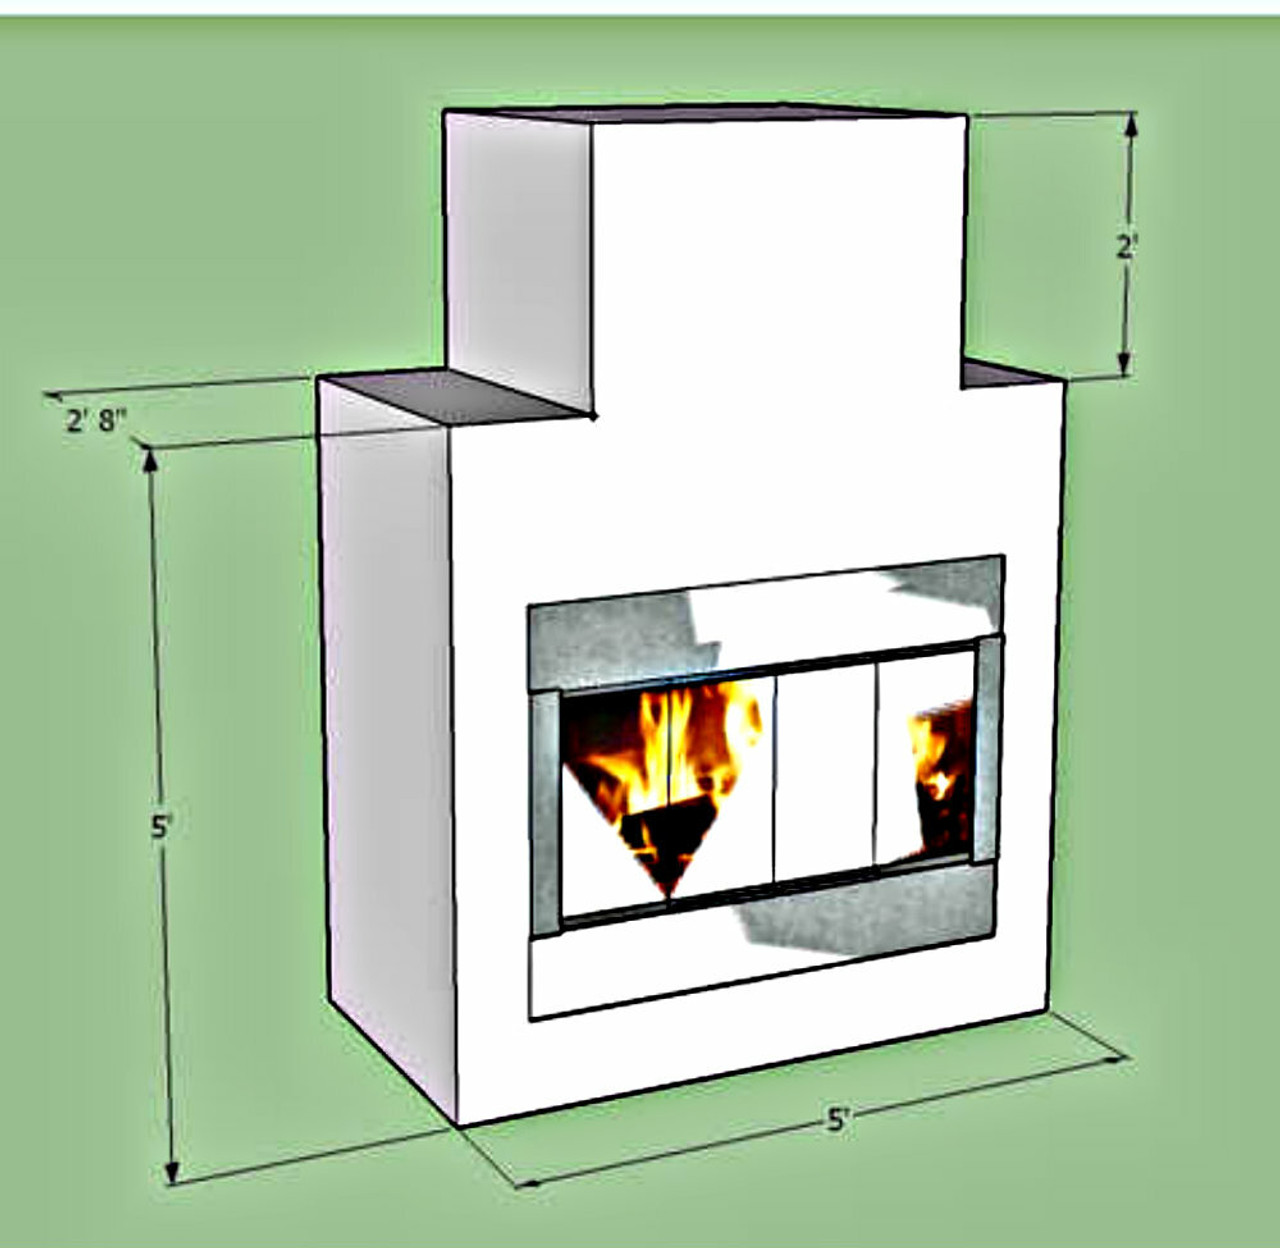 DIY BBQ Outdoor Fireplace Frame kit on Diy Outside Fireplace id=42413